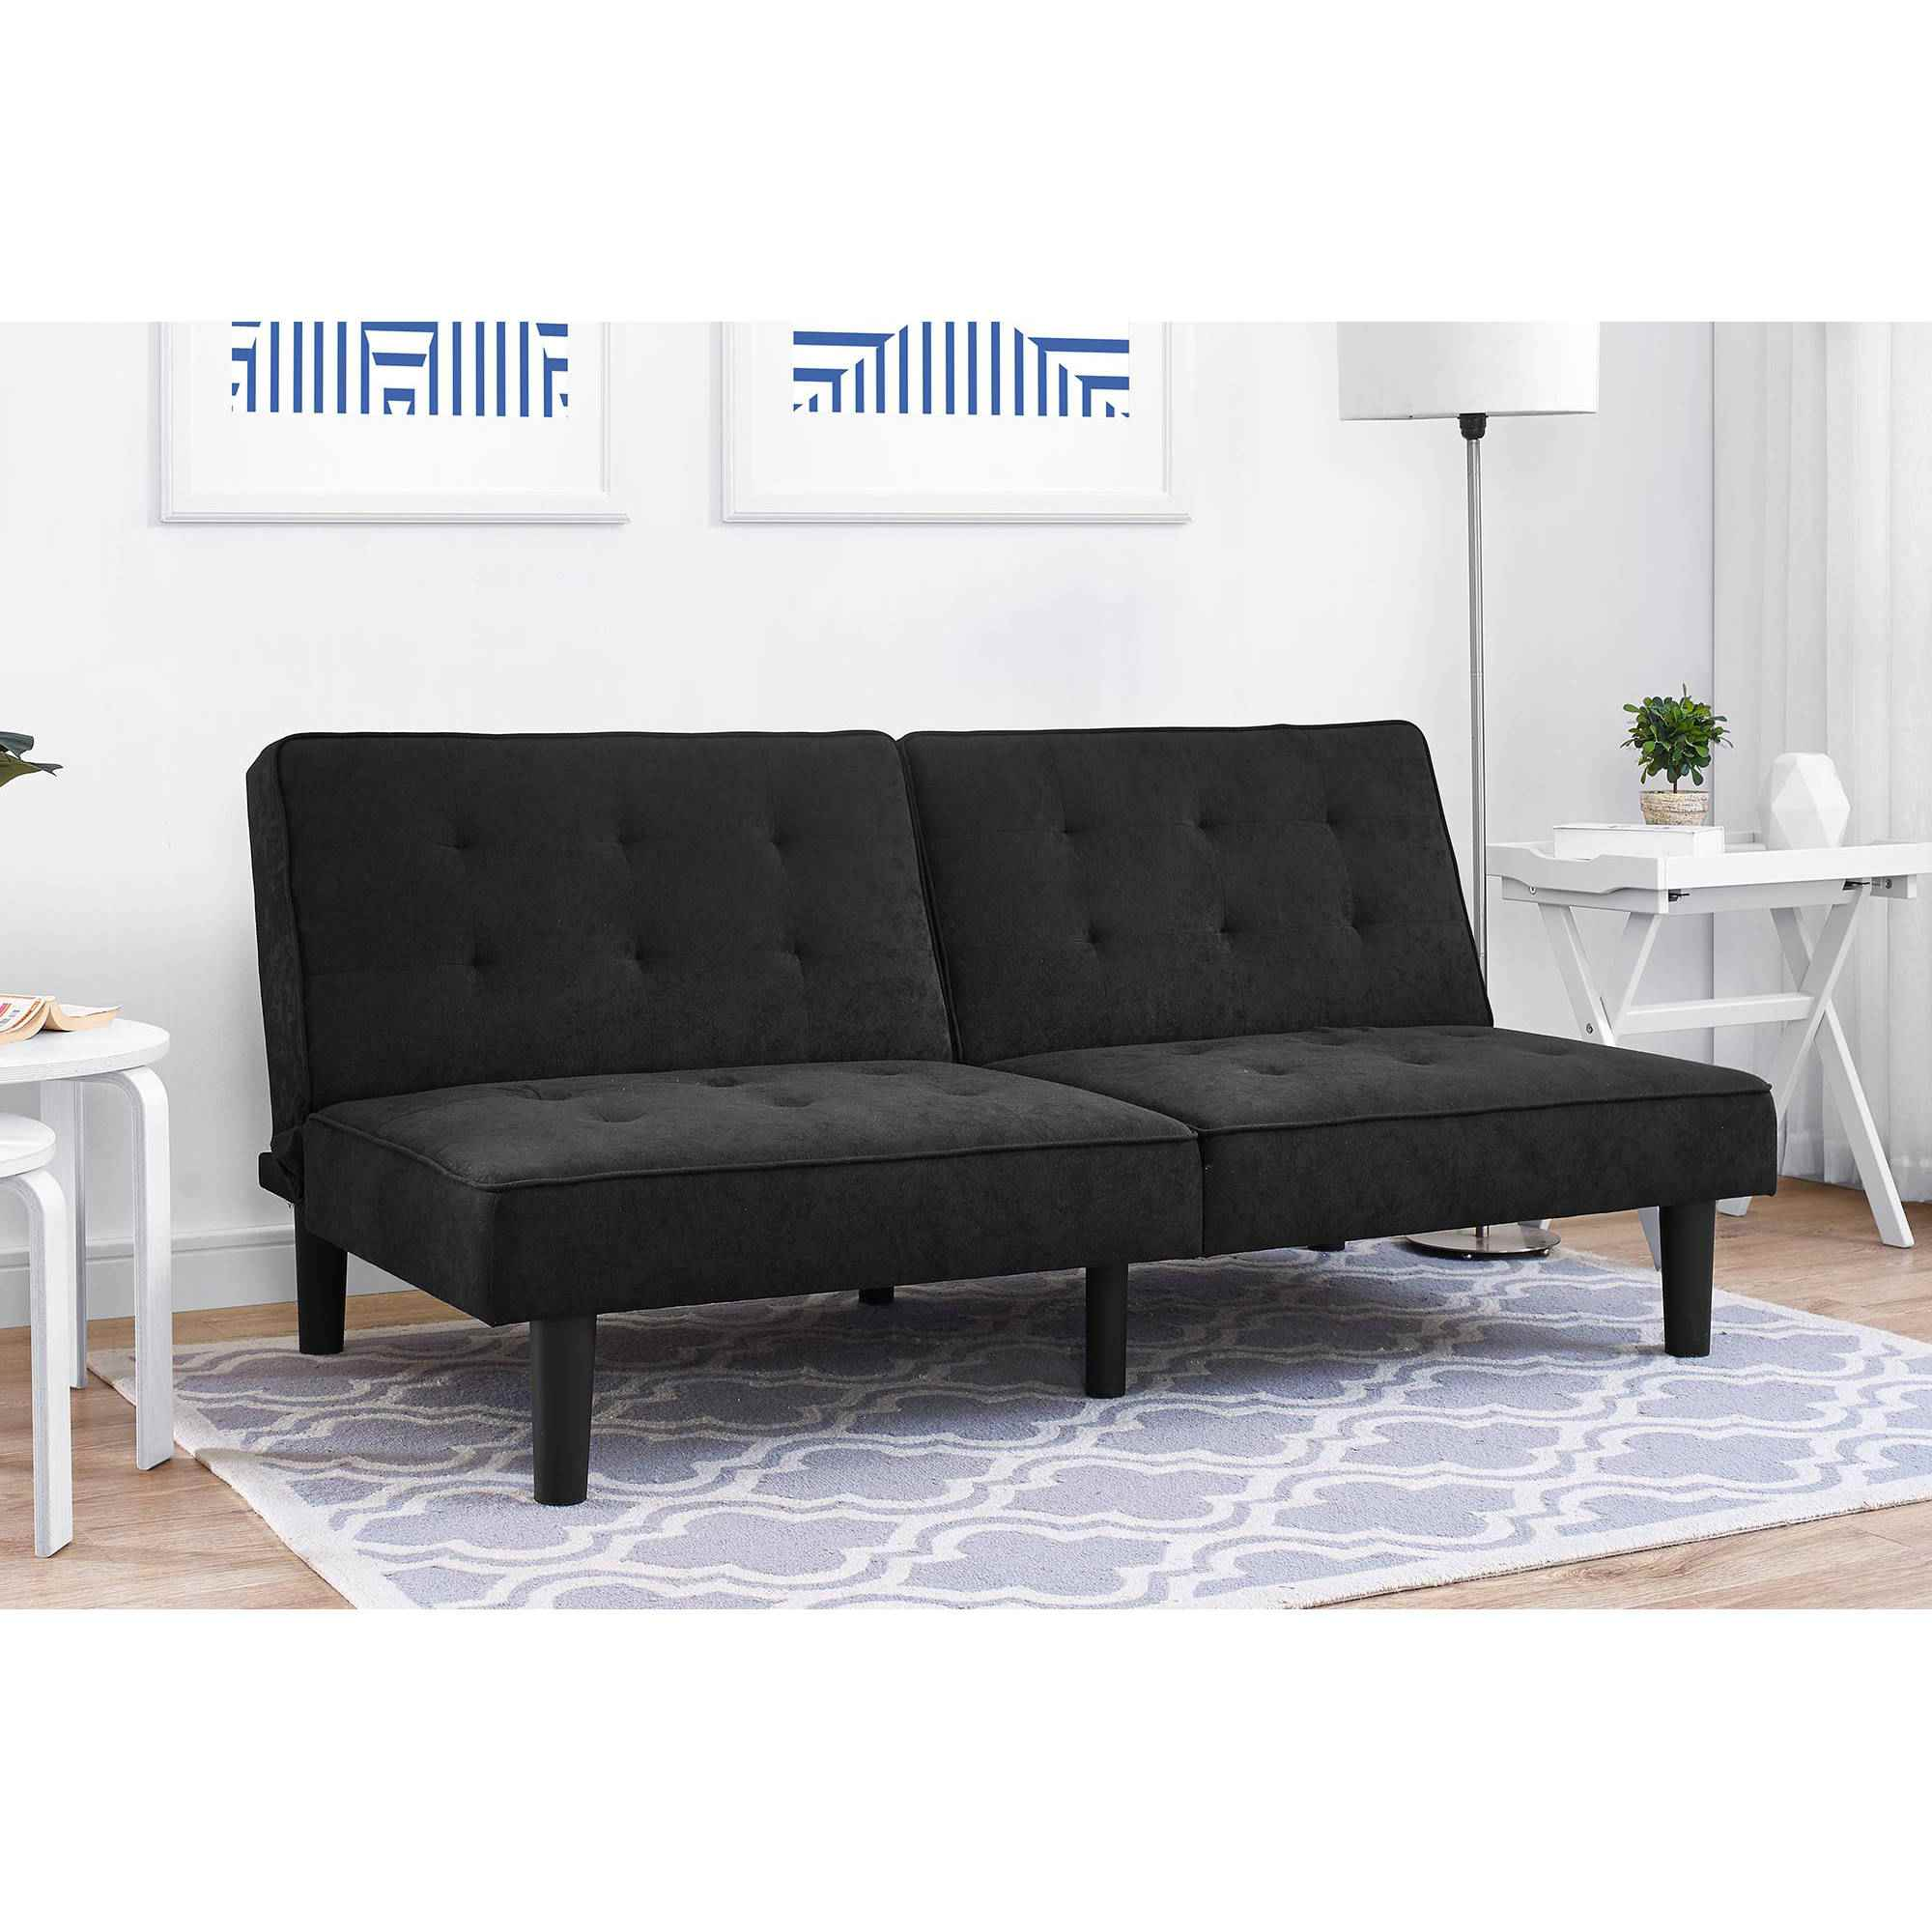 Pleasing The 9 Best Couches At Walmart Of 2019 Ibusinesslaw Wood Chair Design Ideas Ibusinesslaworg